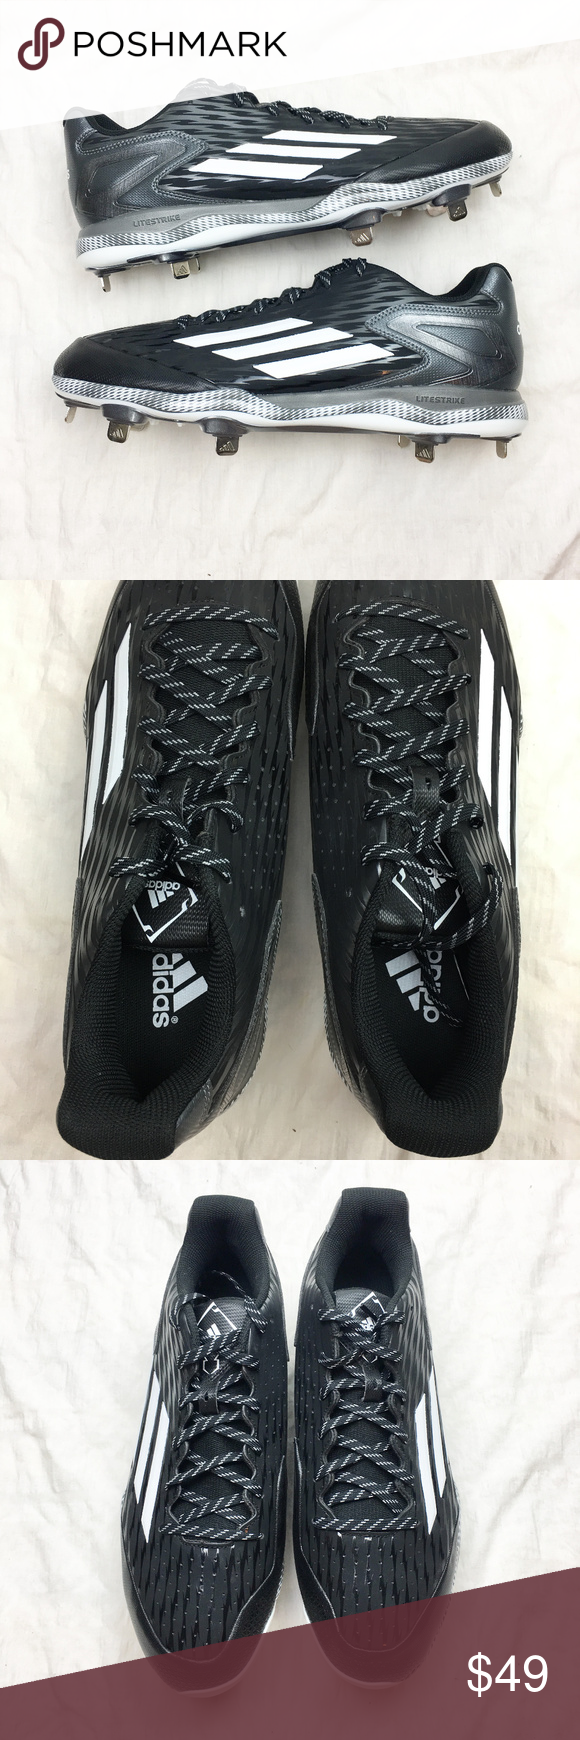 best sneakers 279a5 3ecda New Adidas Power Alley 3 Metal Baseball Cleats -New Adidas Power Alley 3  Metal Baseball